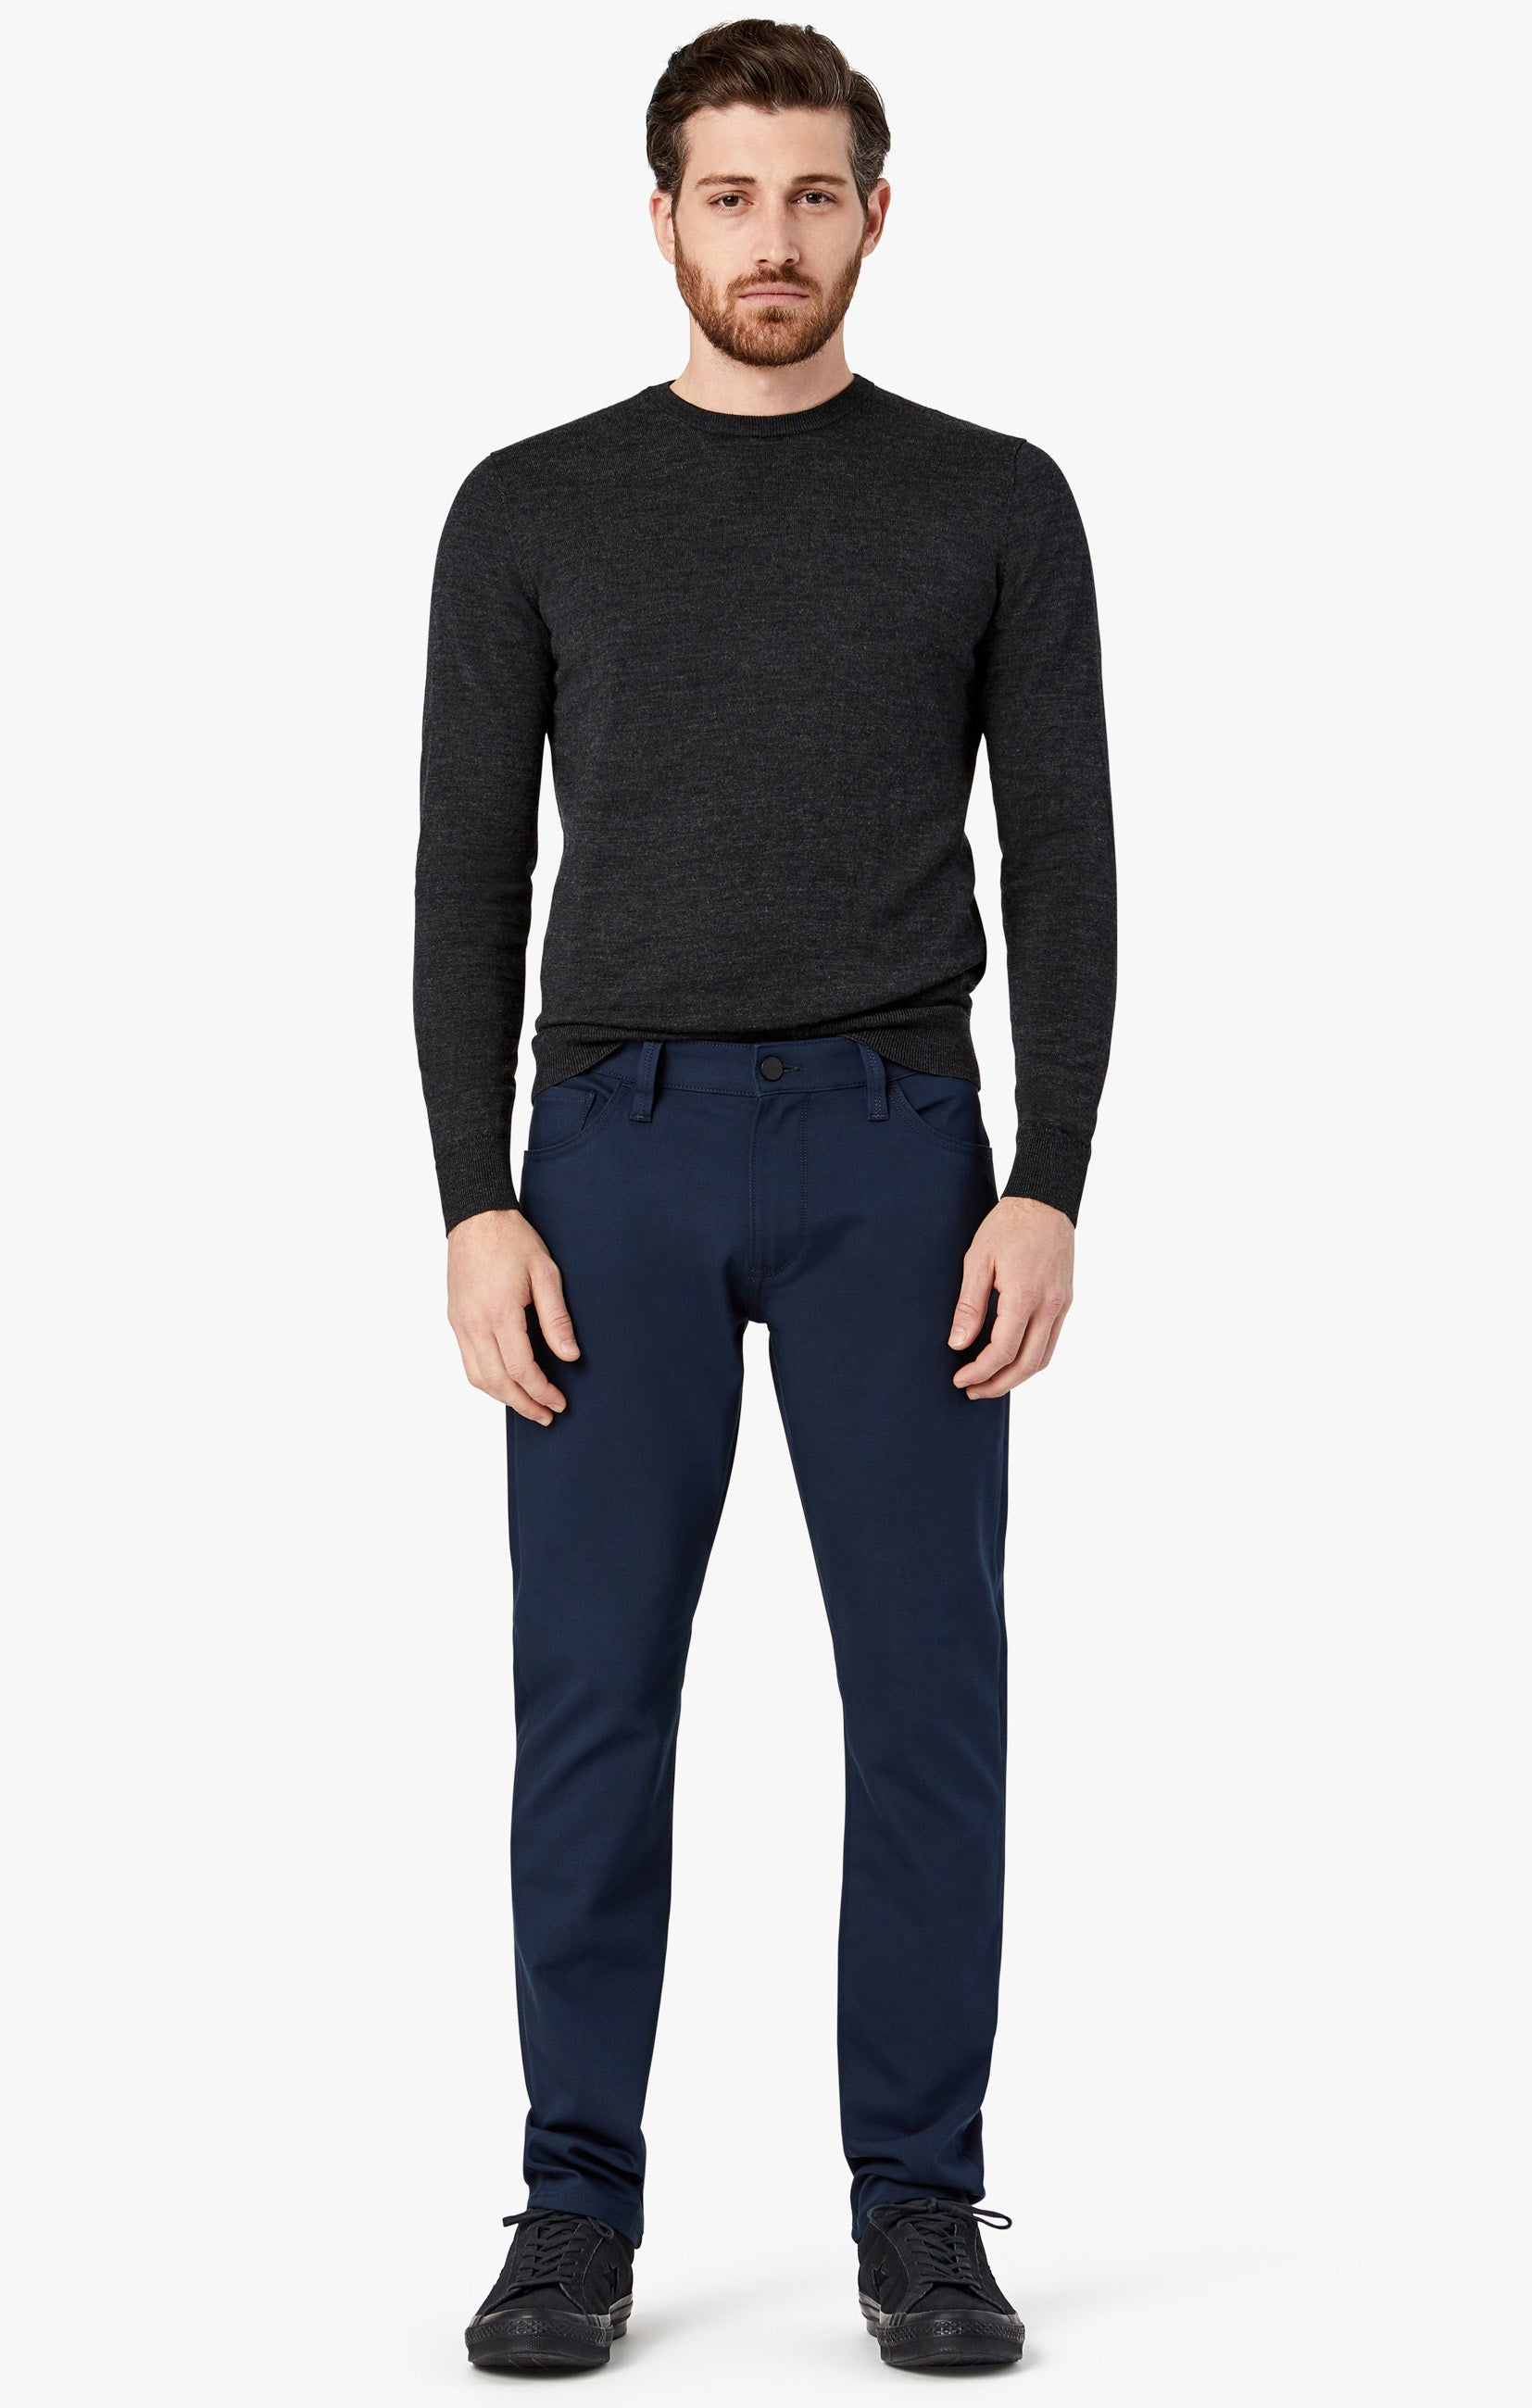 Courage Straight Leg Pants in Navy Commuter Image 2